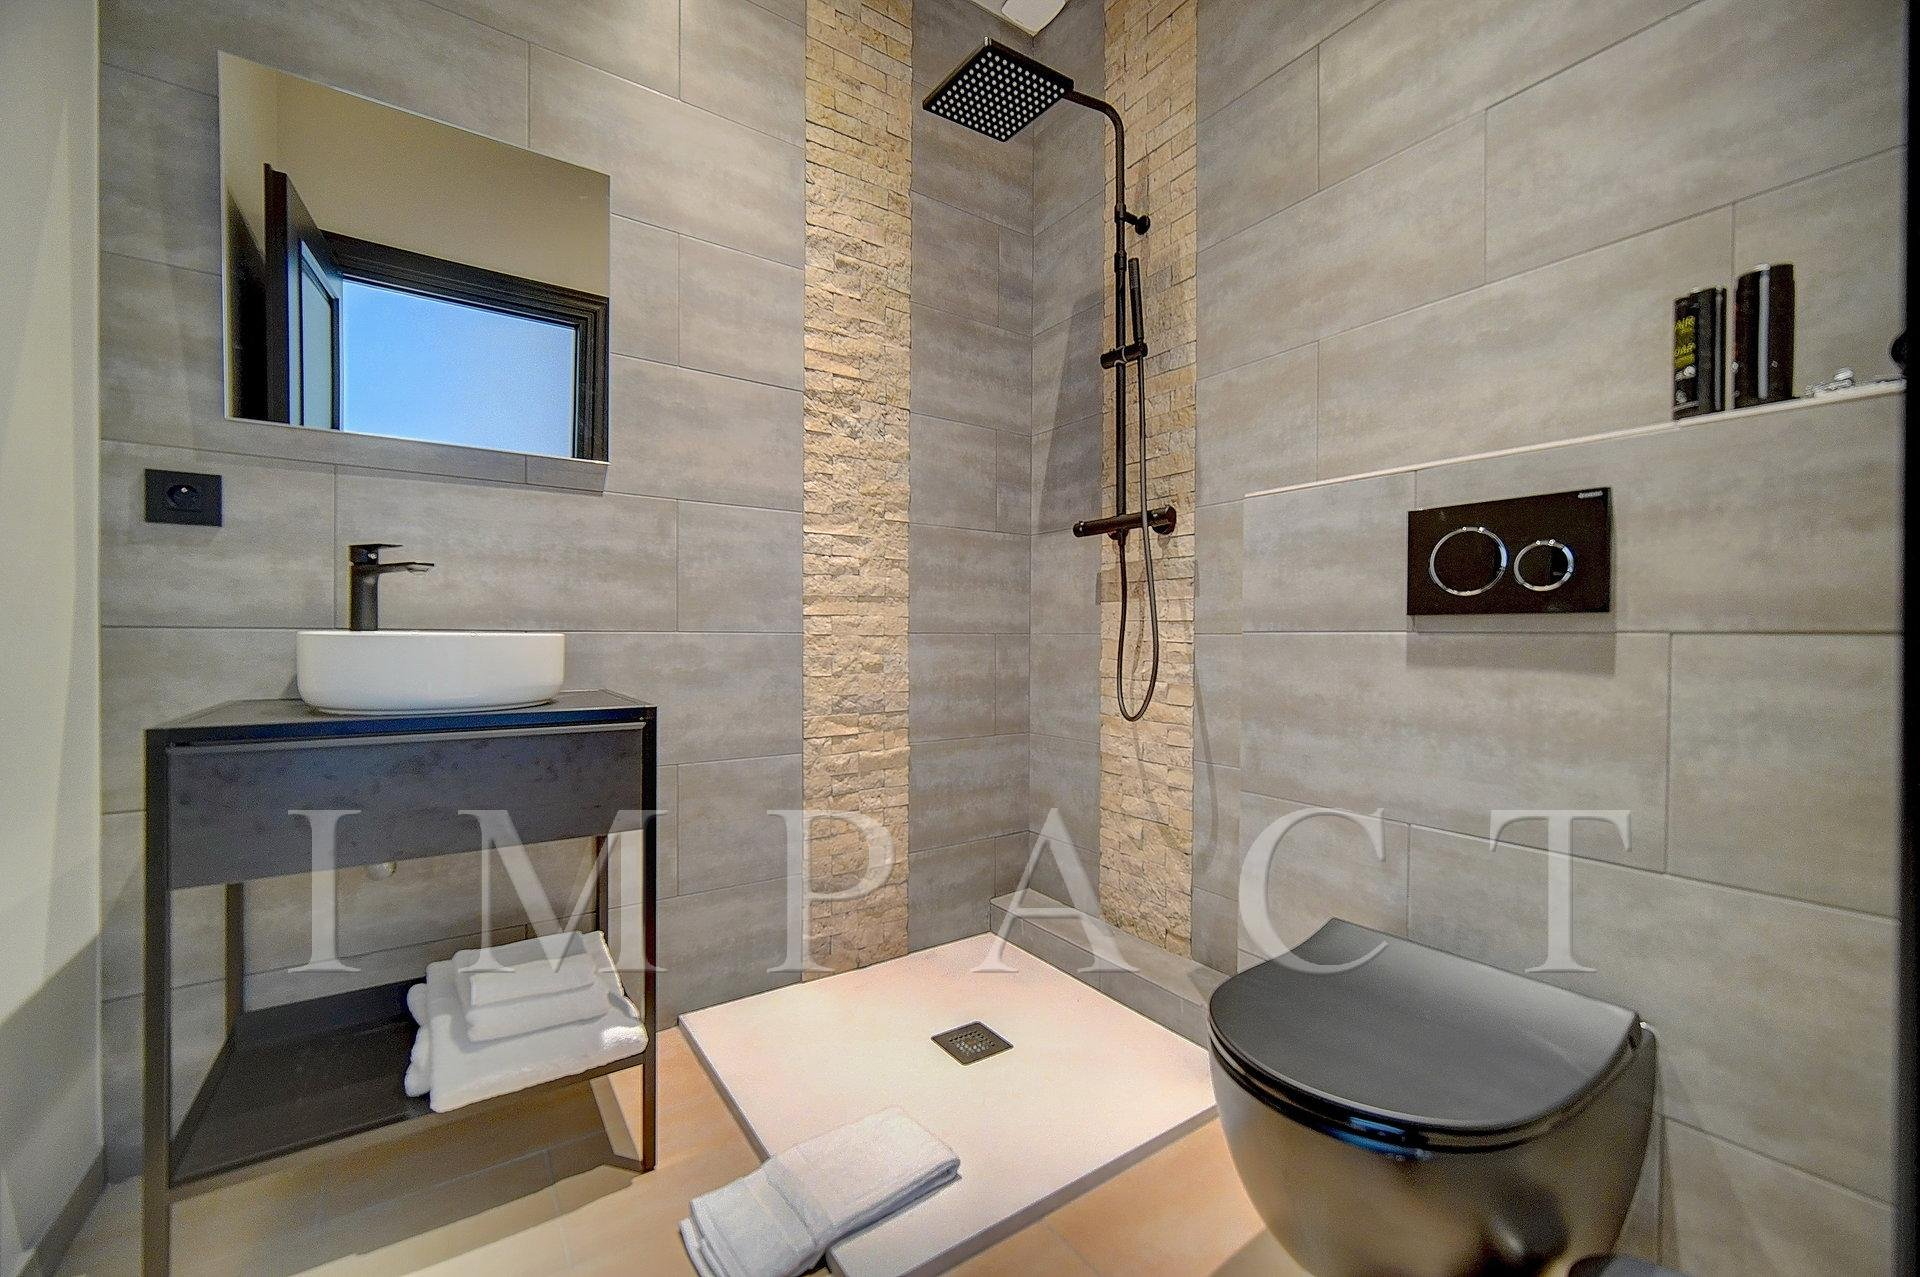 5 bedrooms apartment to rent  Center of  Cannes